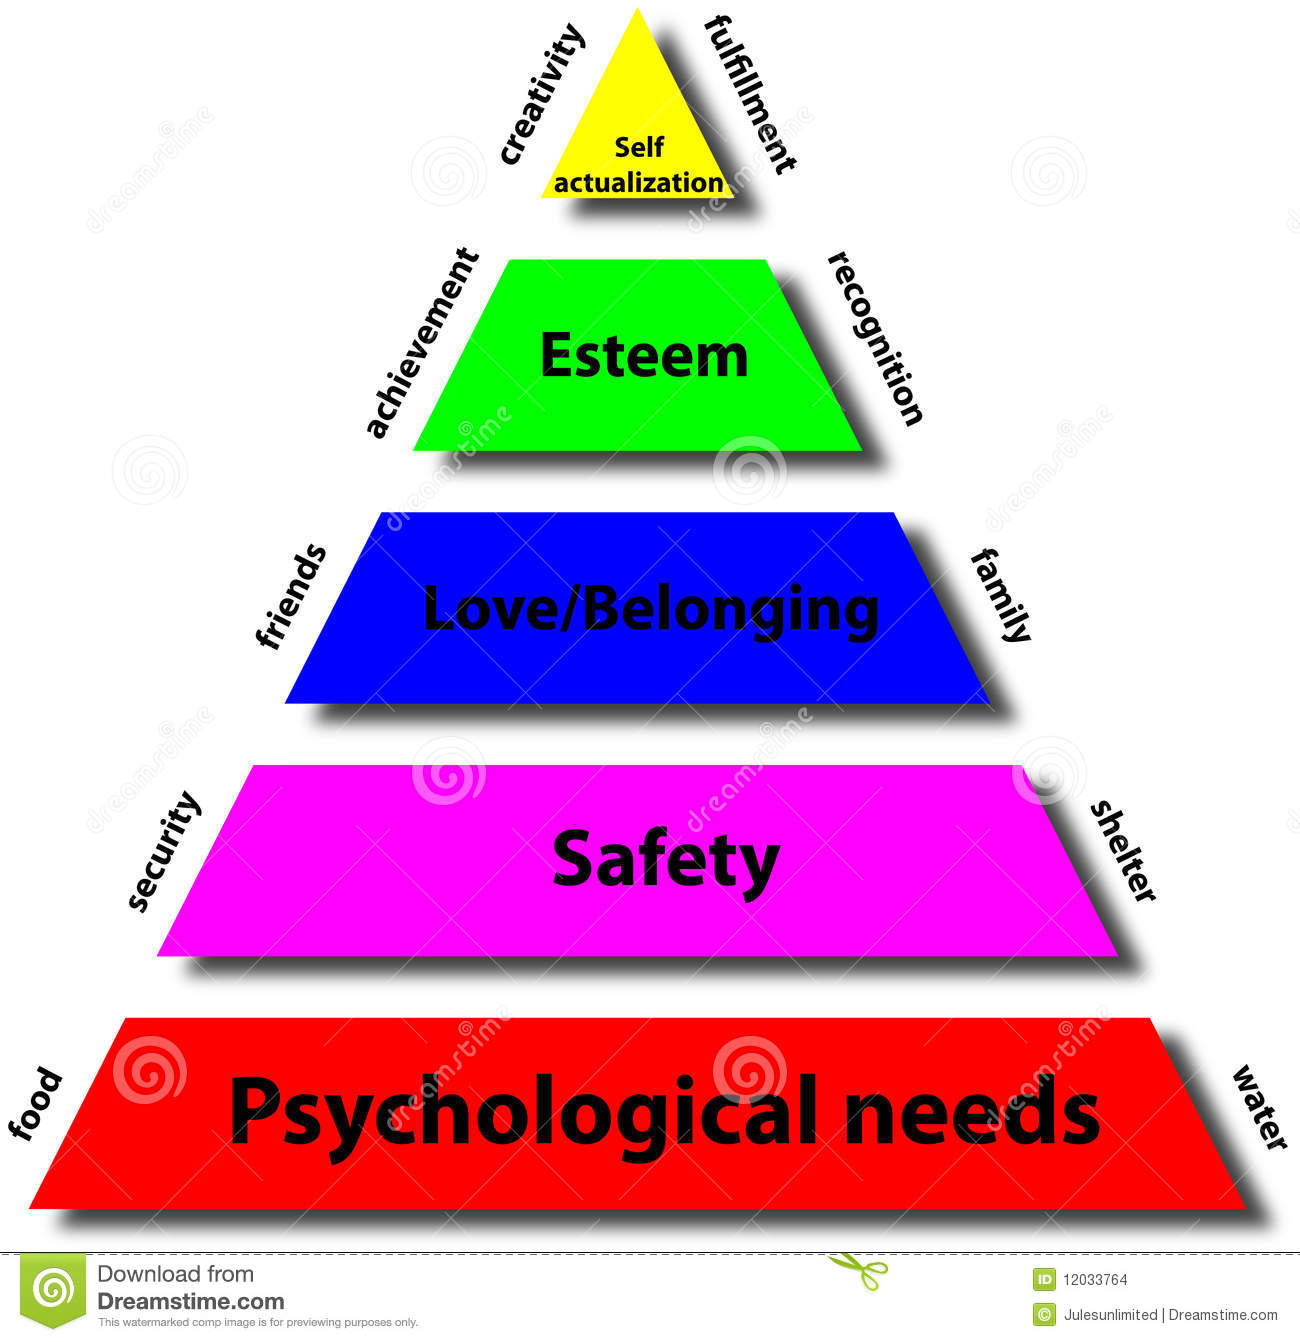 Hierarchy of nursing